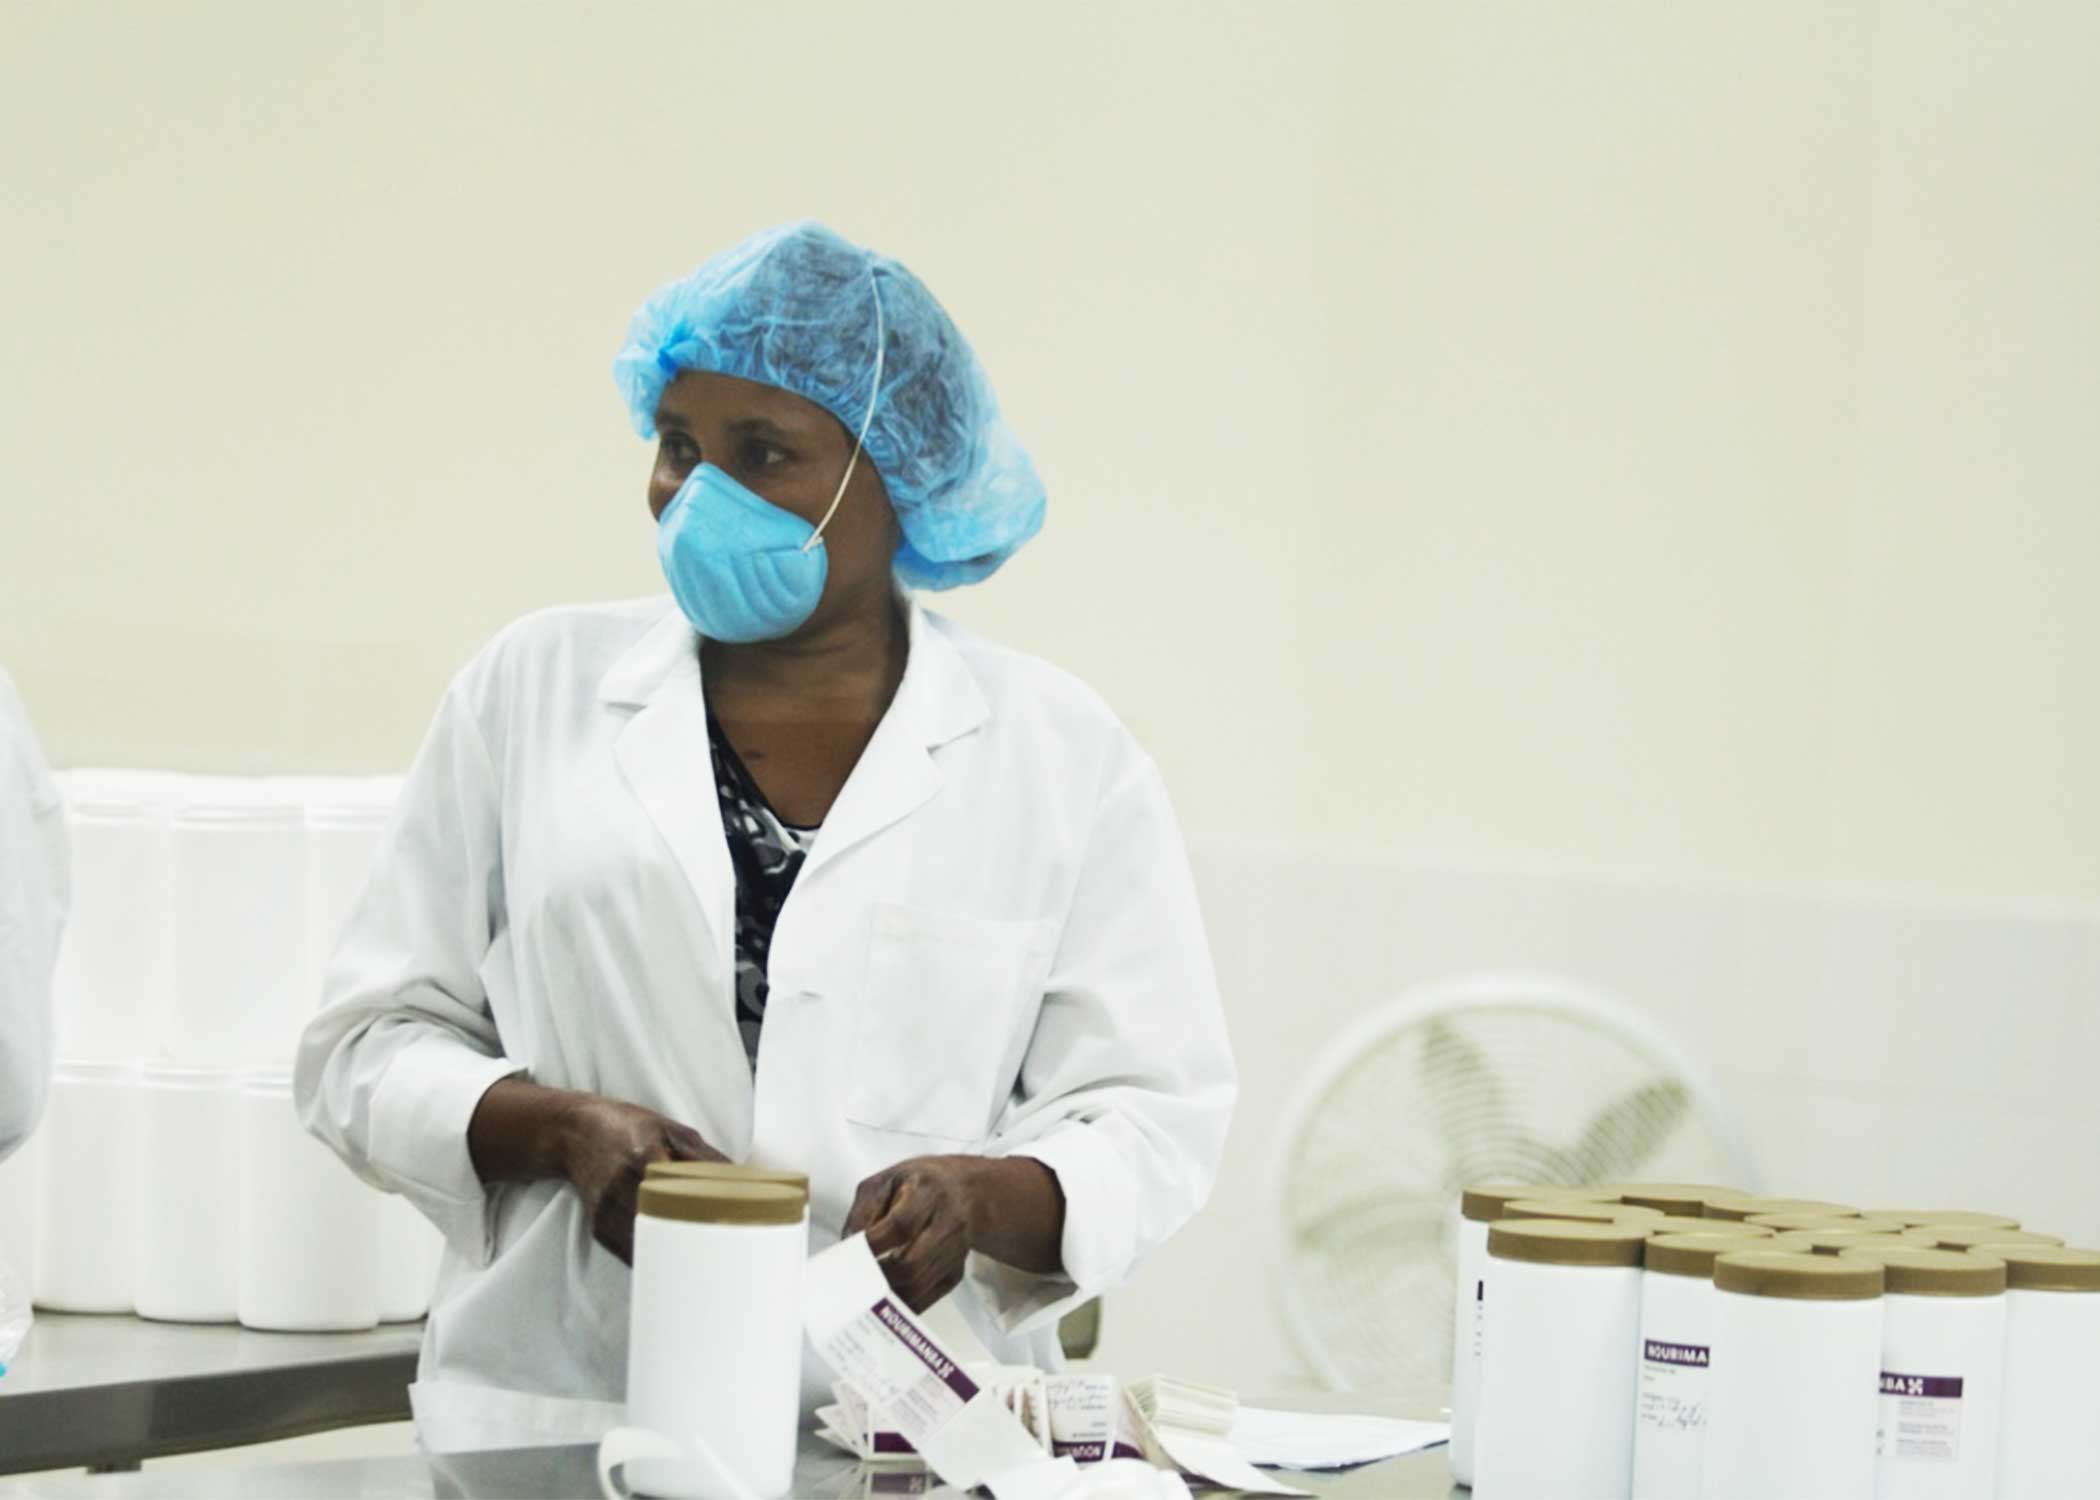 A Haitian worker in the food lab putting labels on jars of Nourimanba, the peanut-based nutritional supplement.